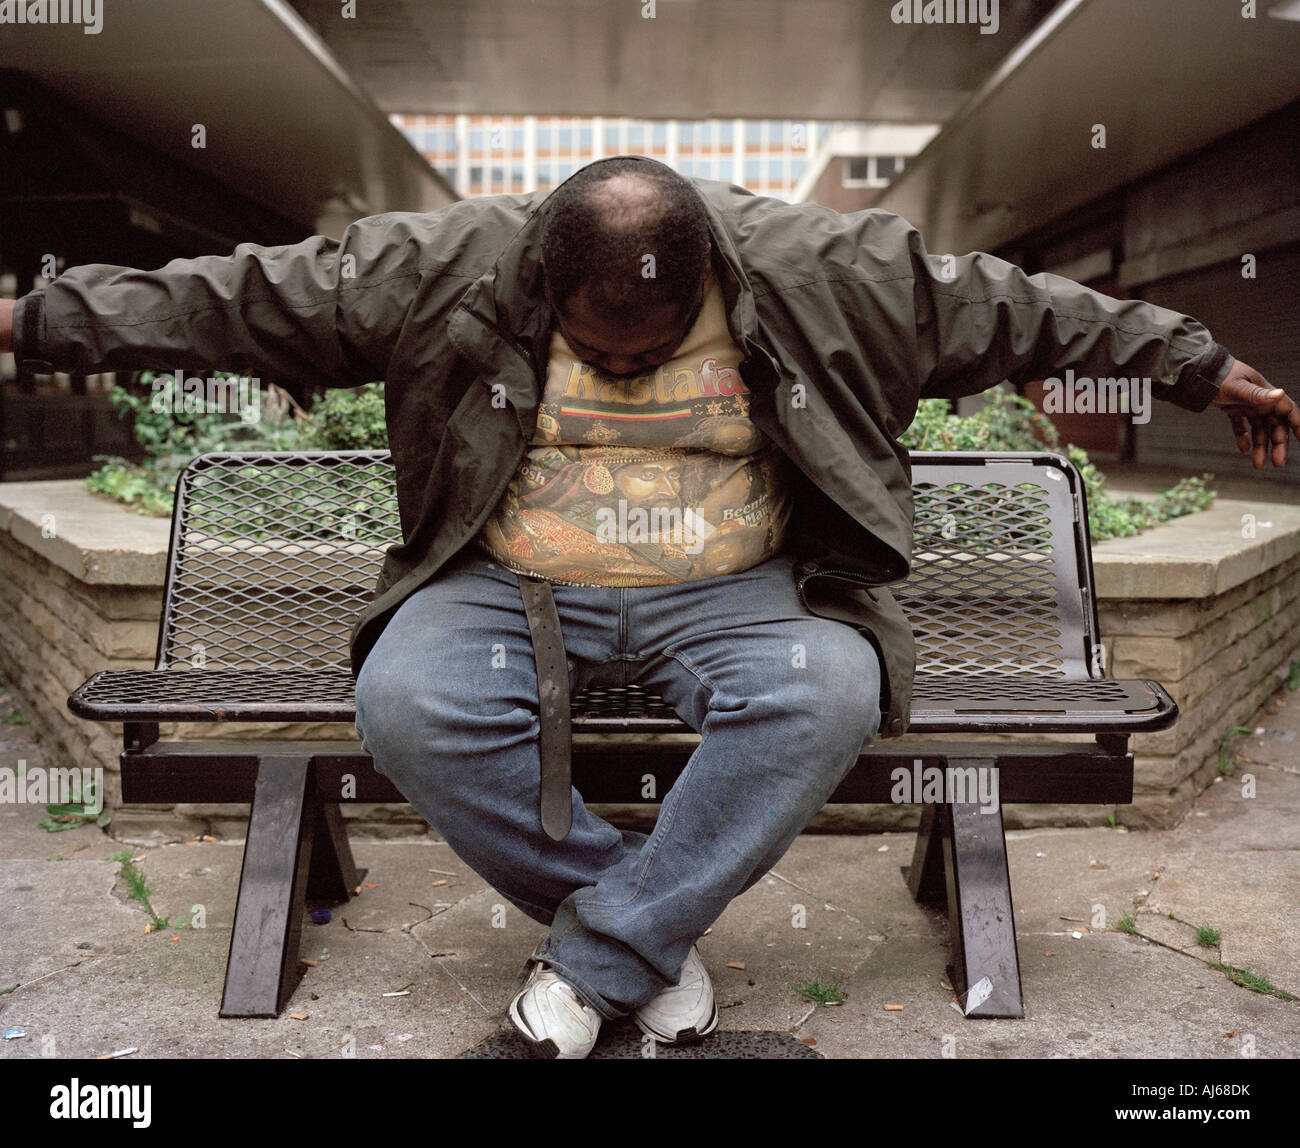 A west Indian man on a bench showing abnormal social behavior, London, England, UK. - Stock Image